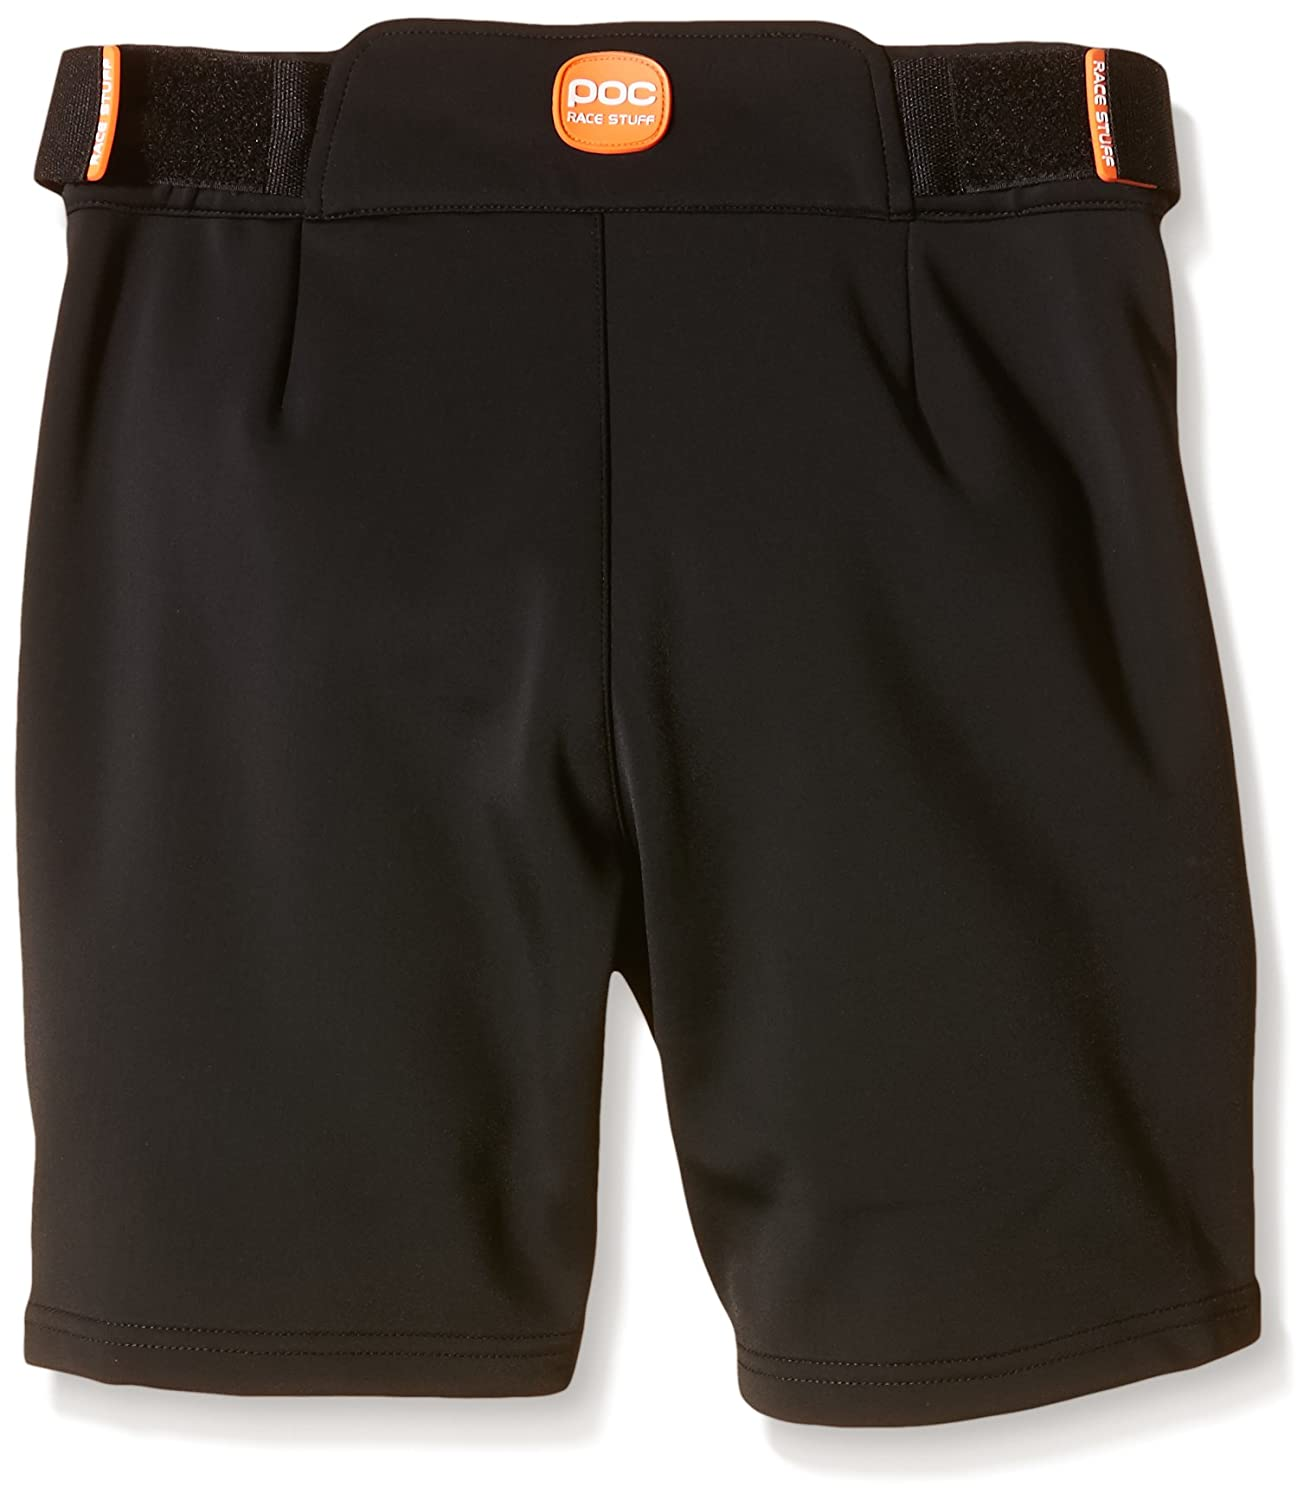 2d28d799f7 Amazon.com  POC - Race Shorts Jr.  Sports   Outdoors